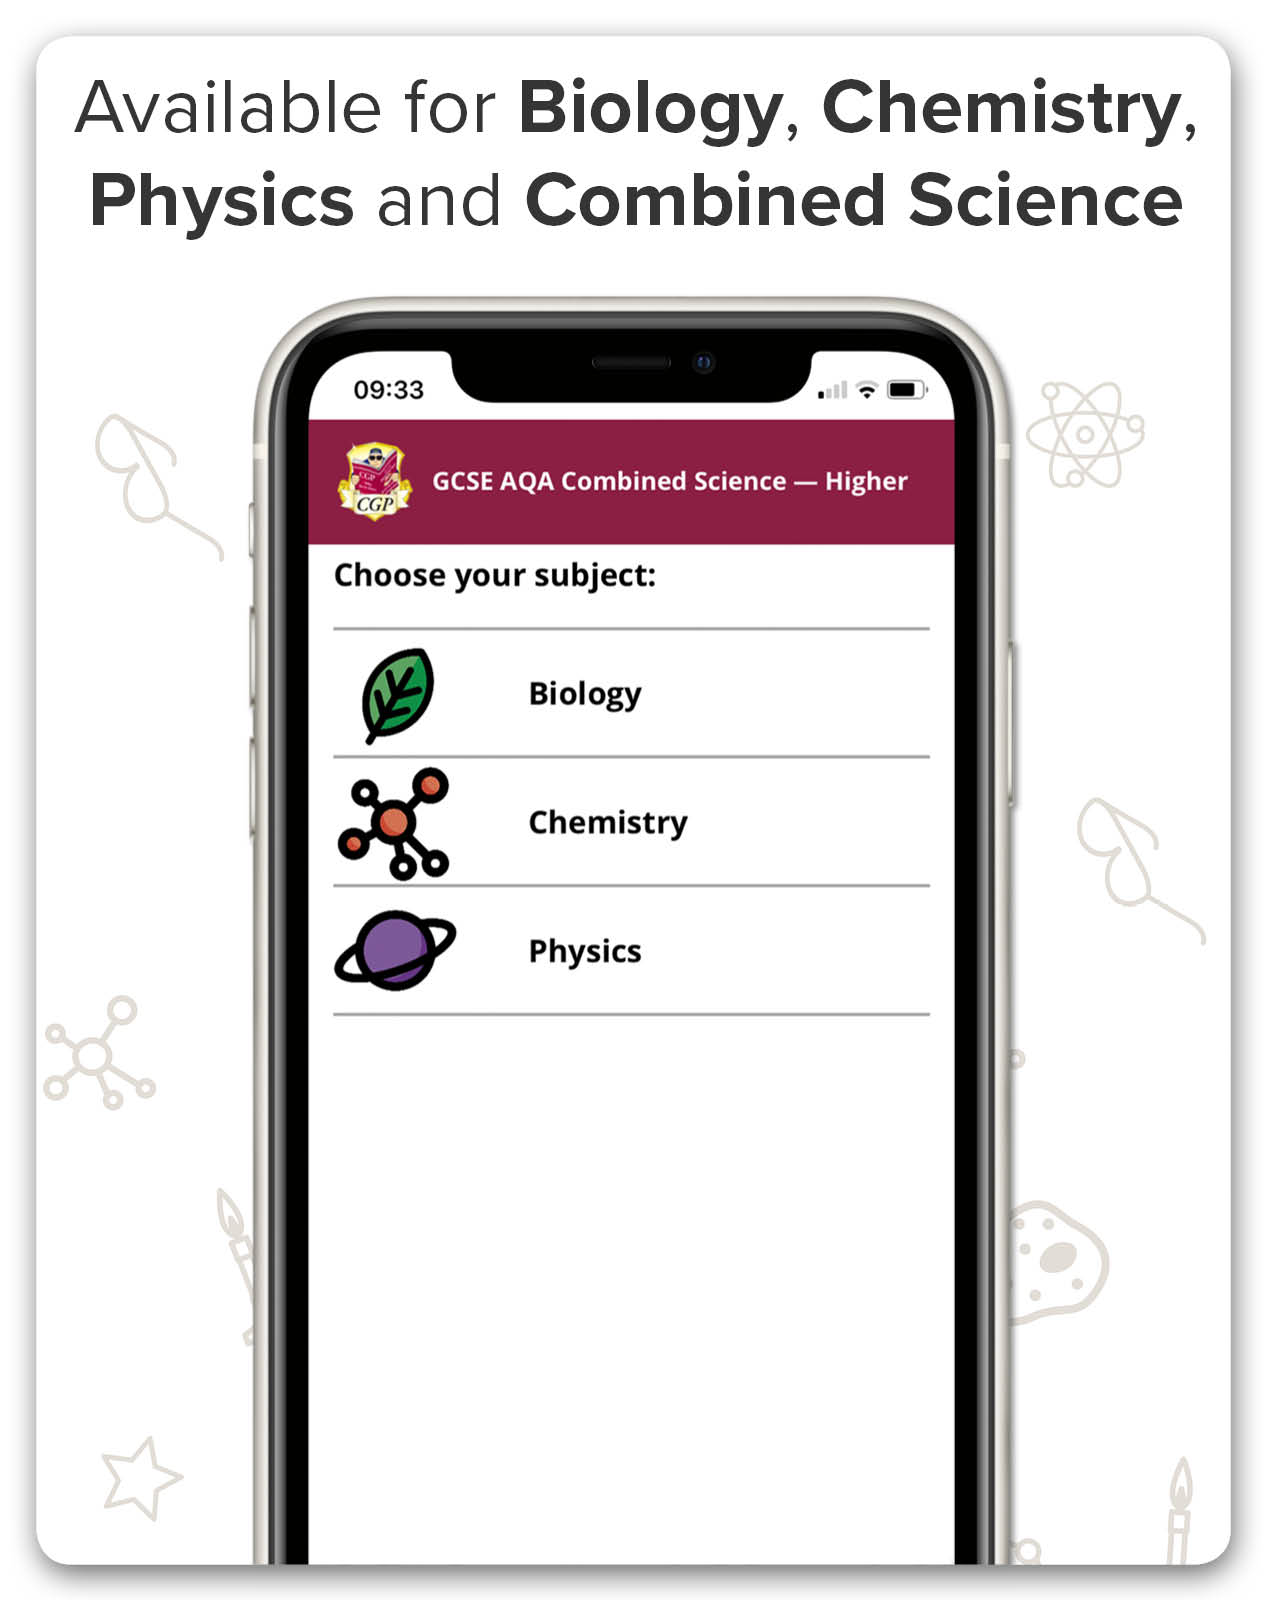 CGP's AQA GCSE Science Apps are available for Combined Science, Biology and Chemistry